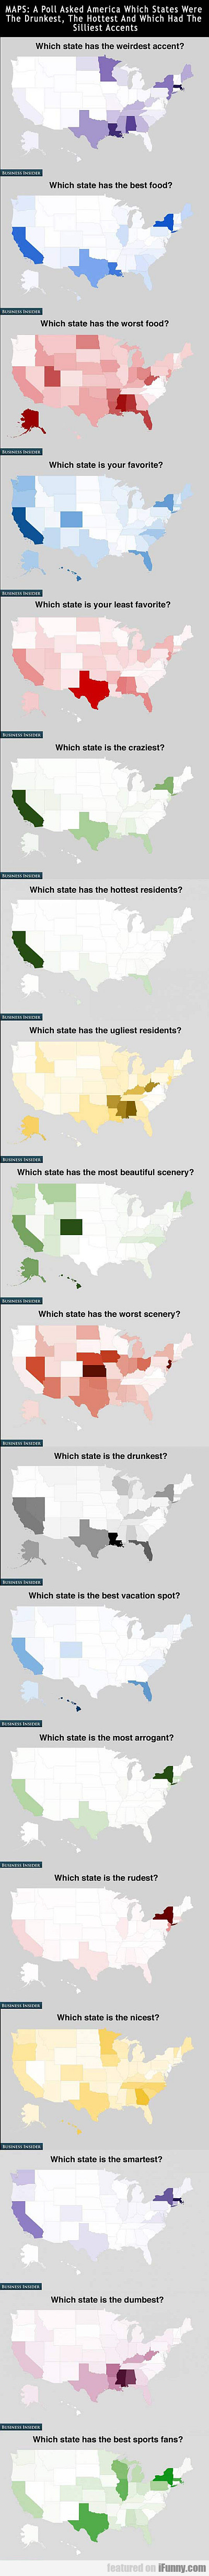 How Americans Feel About Their States